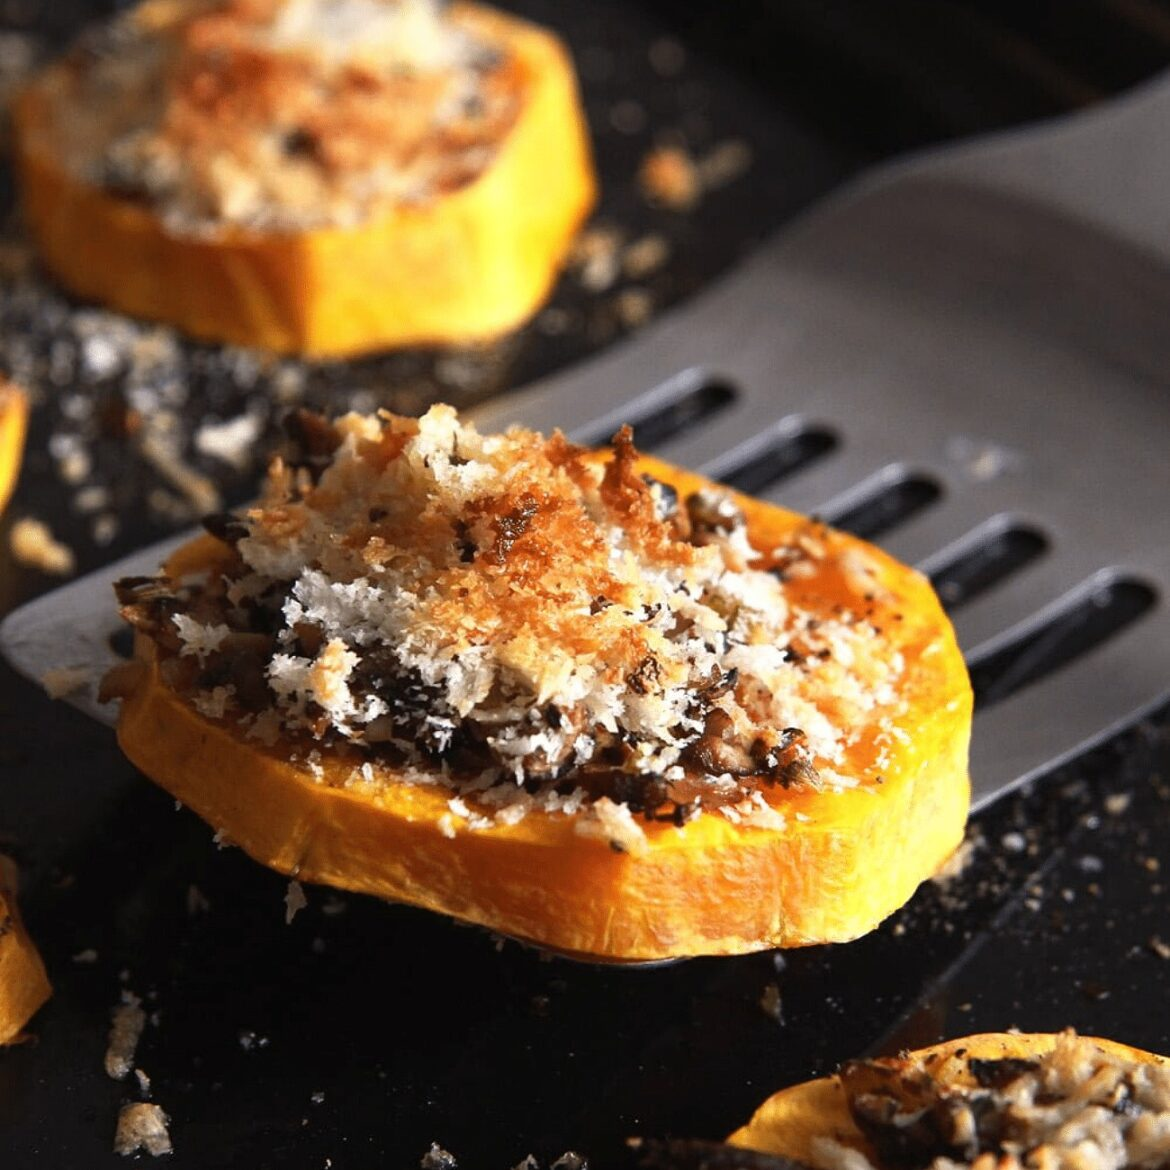 roasted butternut squash slice being lifted from the tray